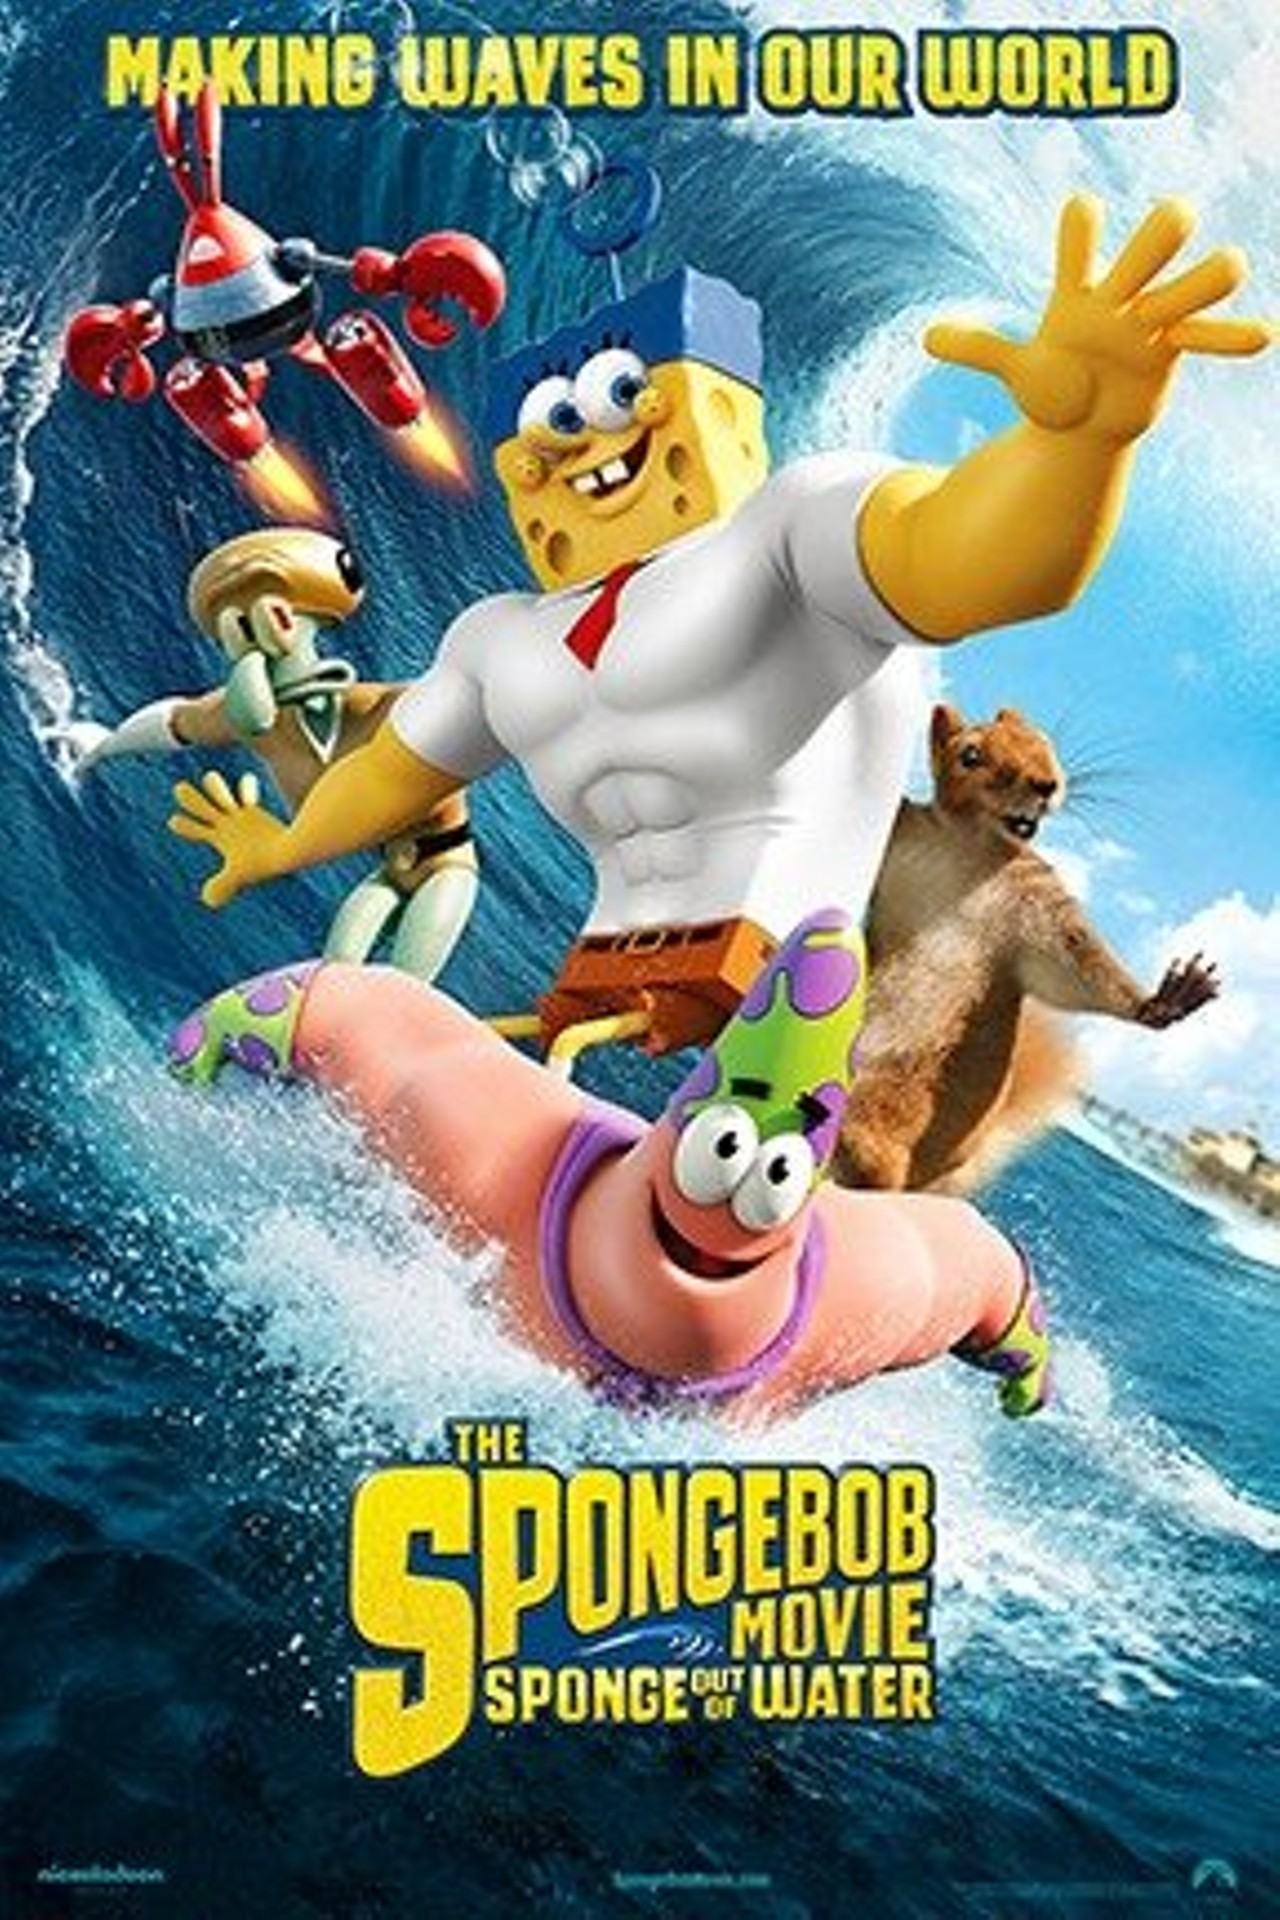 The spongebob movie sponge out of water 3d rochester city newspaper